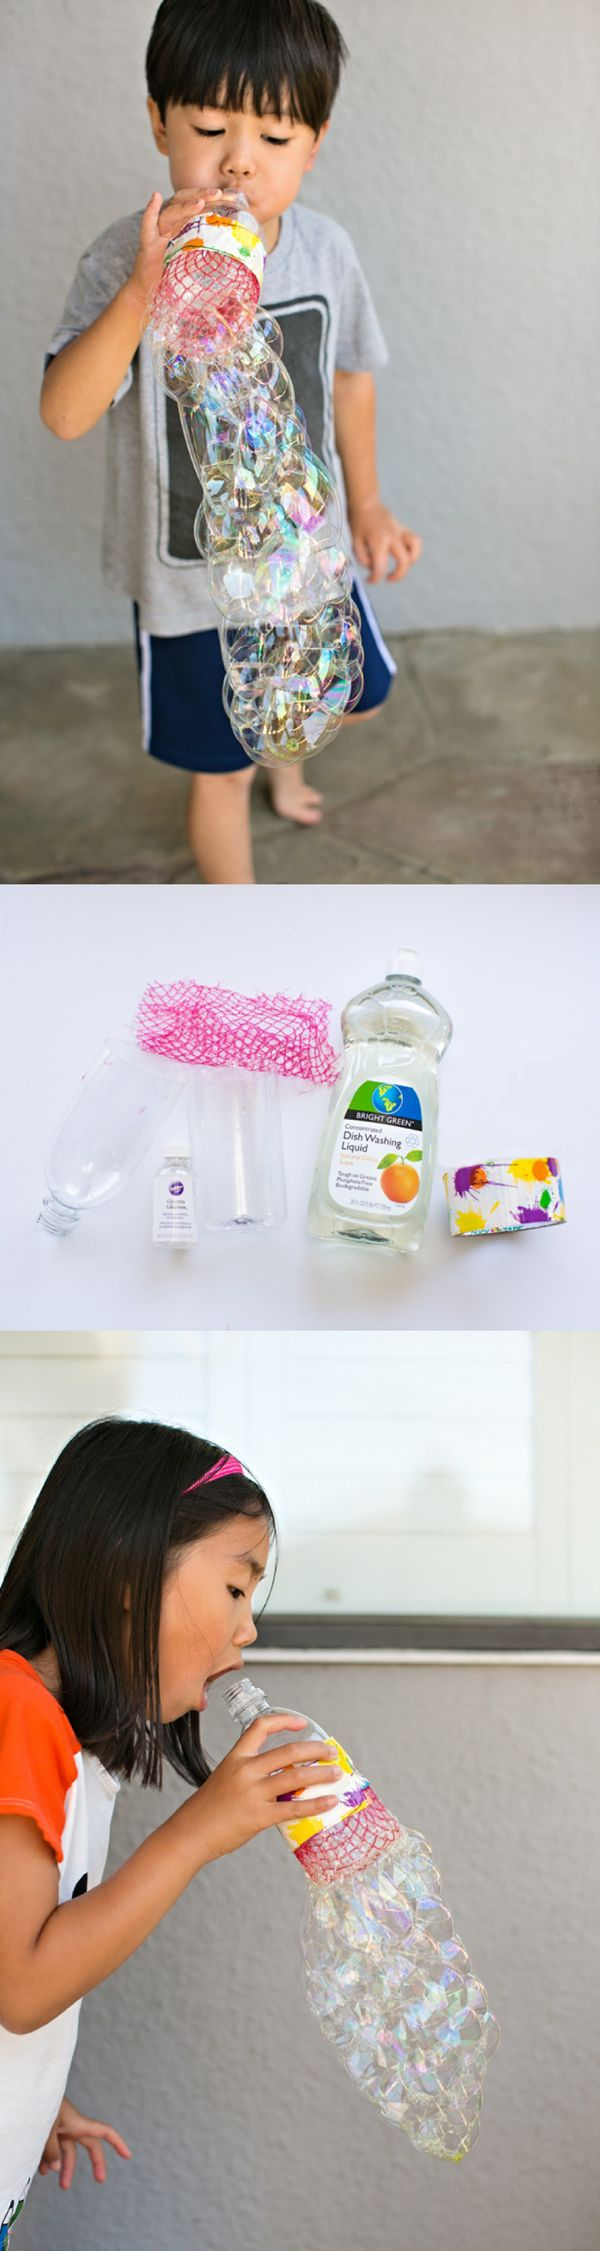 DIY Recycled Bottle Bubble Blower. Find out how to make this fun DIY bubble solution and blower in just 5 minutes! Fun outdoor summer craft for kids.